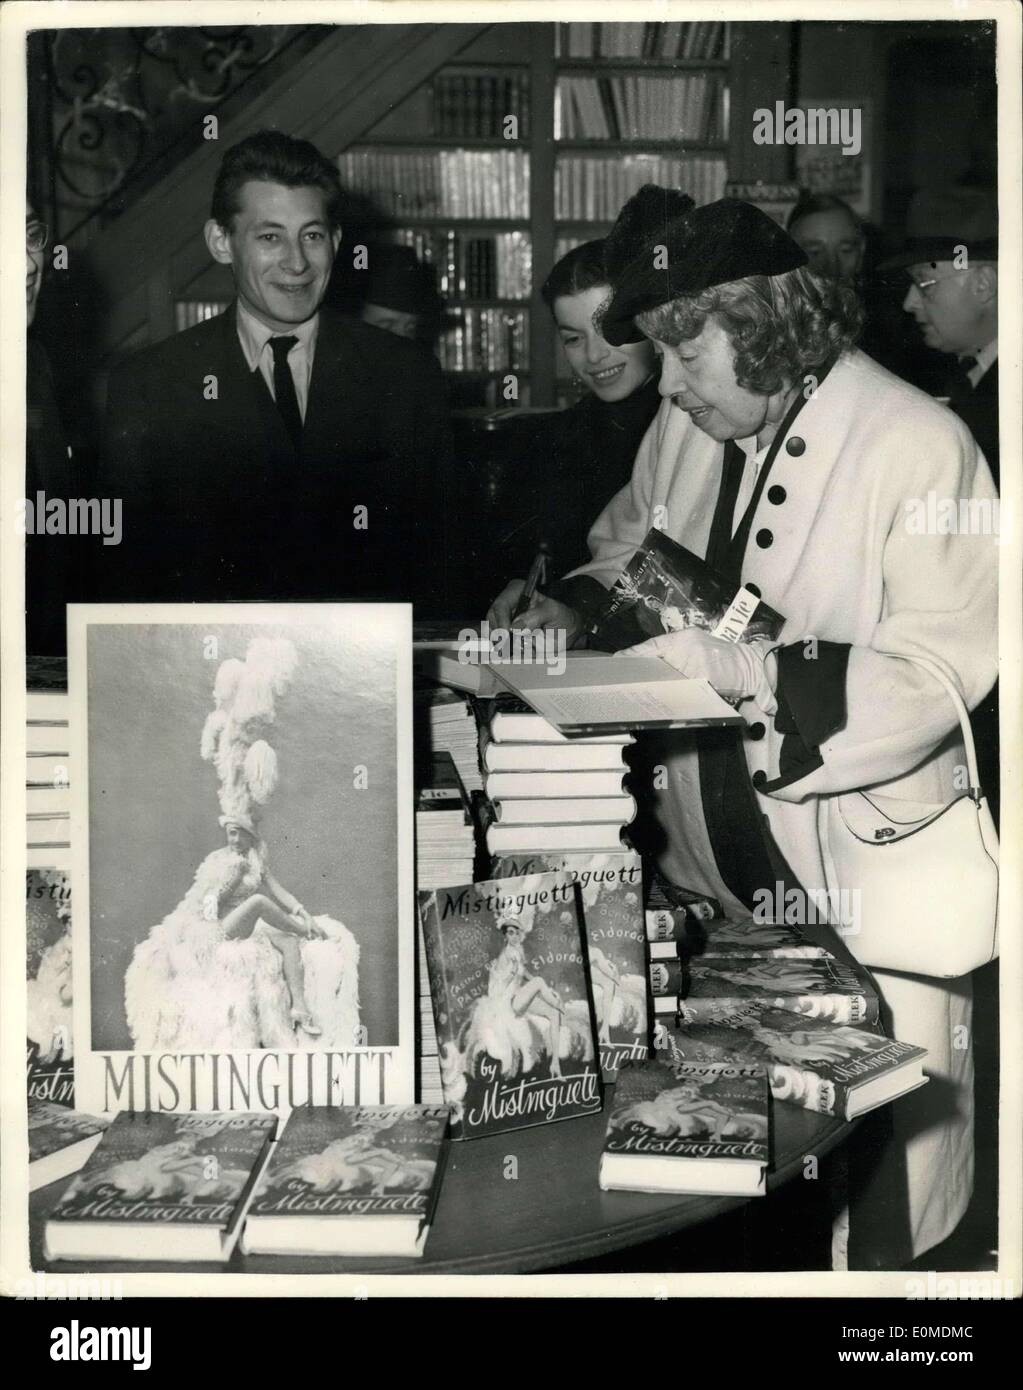 Oct. 11, 1954 - Mistinguett Autographs Copies Of Her New Book. Famous French Star In London: Mistinguett the famous French star - Stock Image